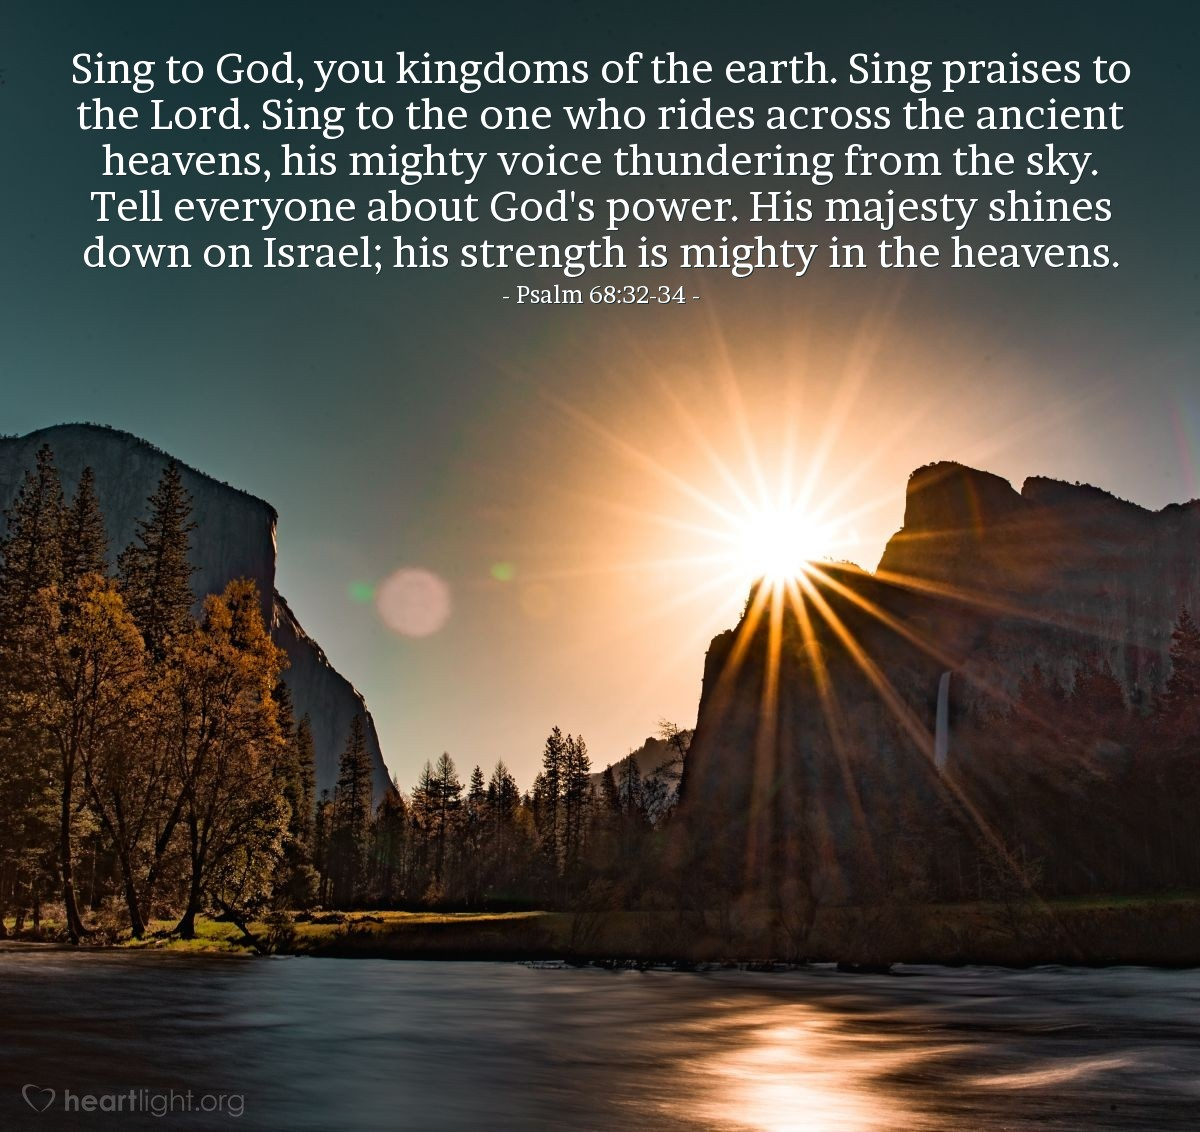 Illustration of Psalm 68:32-34 — Sing to God, you kingdoms of the earth. Sing praises to the Lord. Sing to the one who rides across the ancient heavens, his mighty voice thundering from the sky. Tell everyone about God's power. His majesty shines down on Israel; his strength is mighty in the heavens.